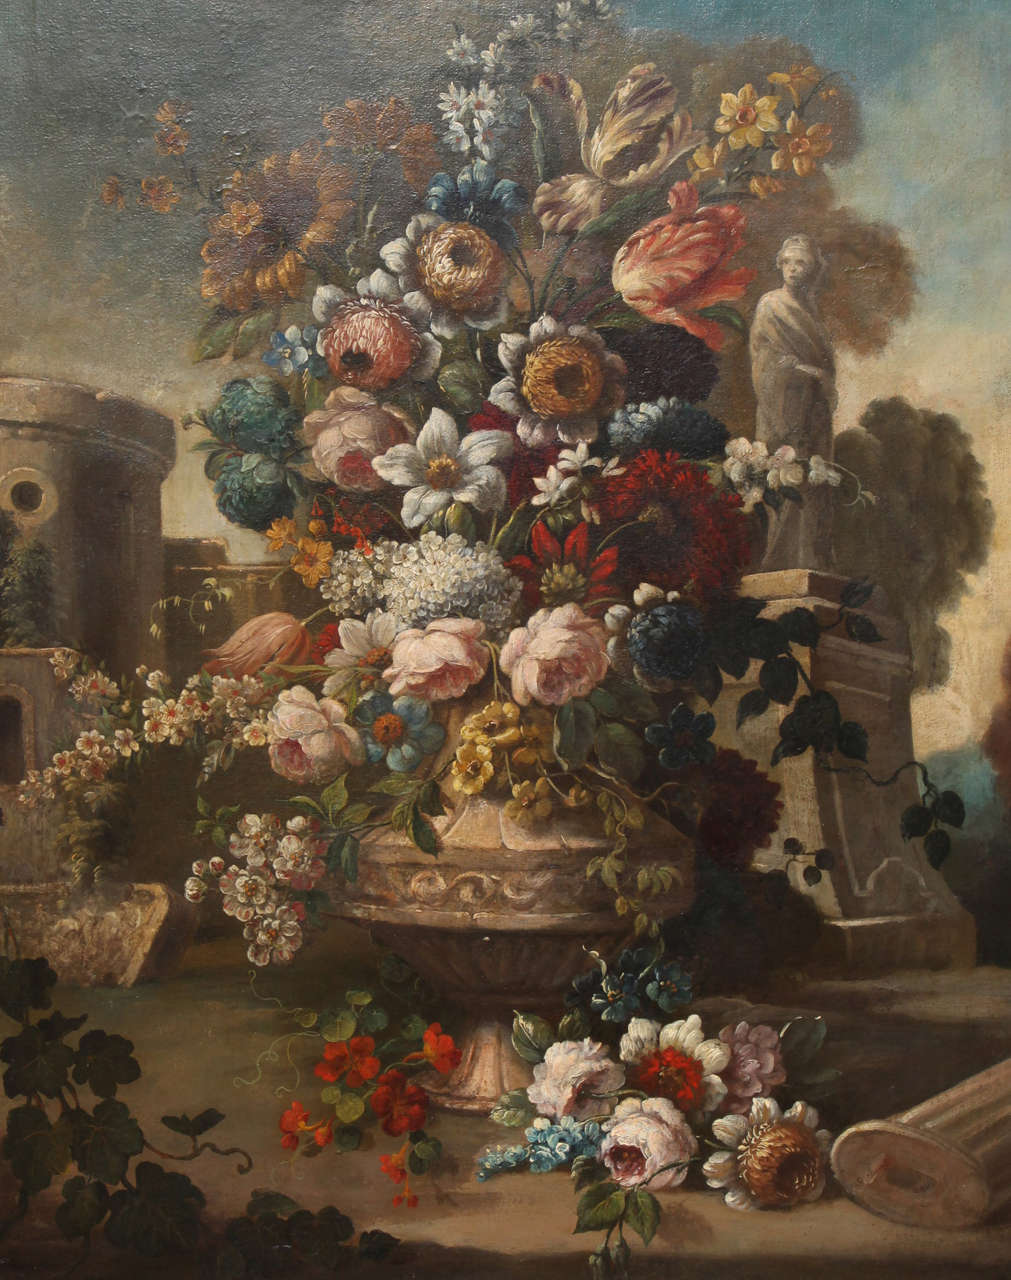 Pair of Still Life Paintings of Flowers, French, 18th Century, Original Frames For Sale 2